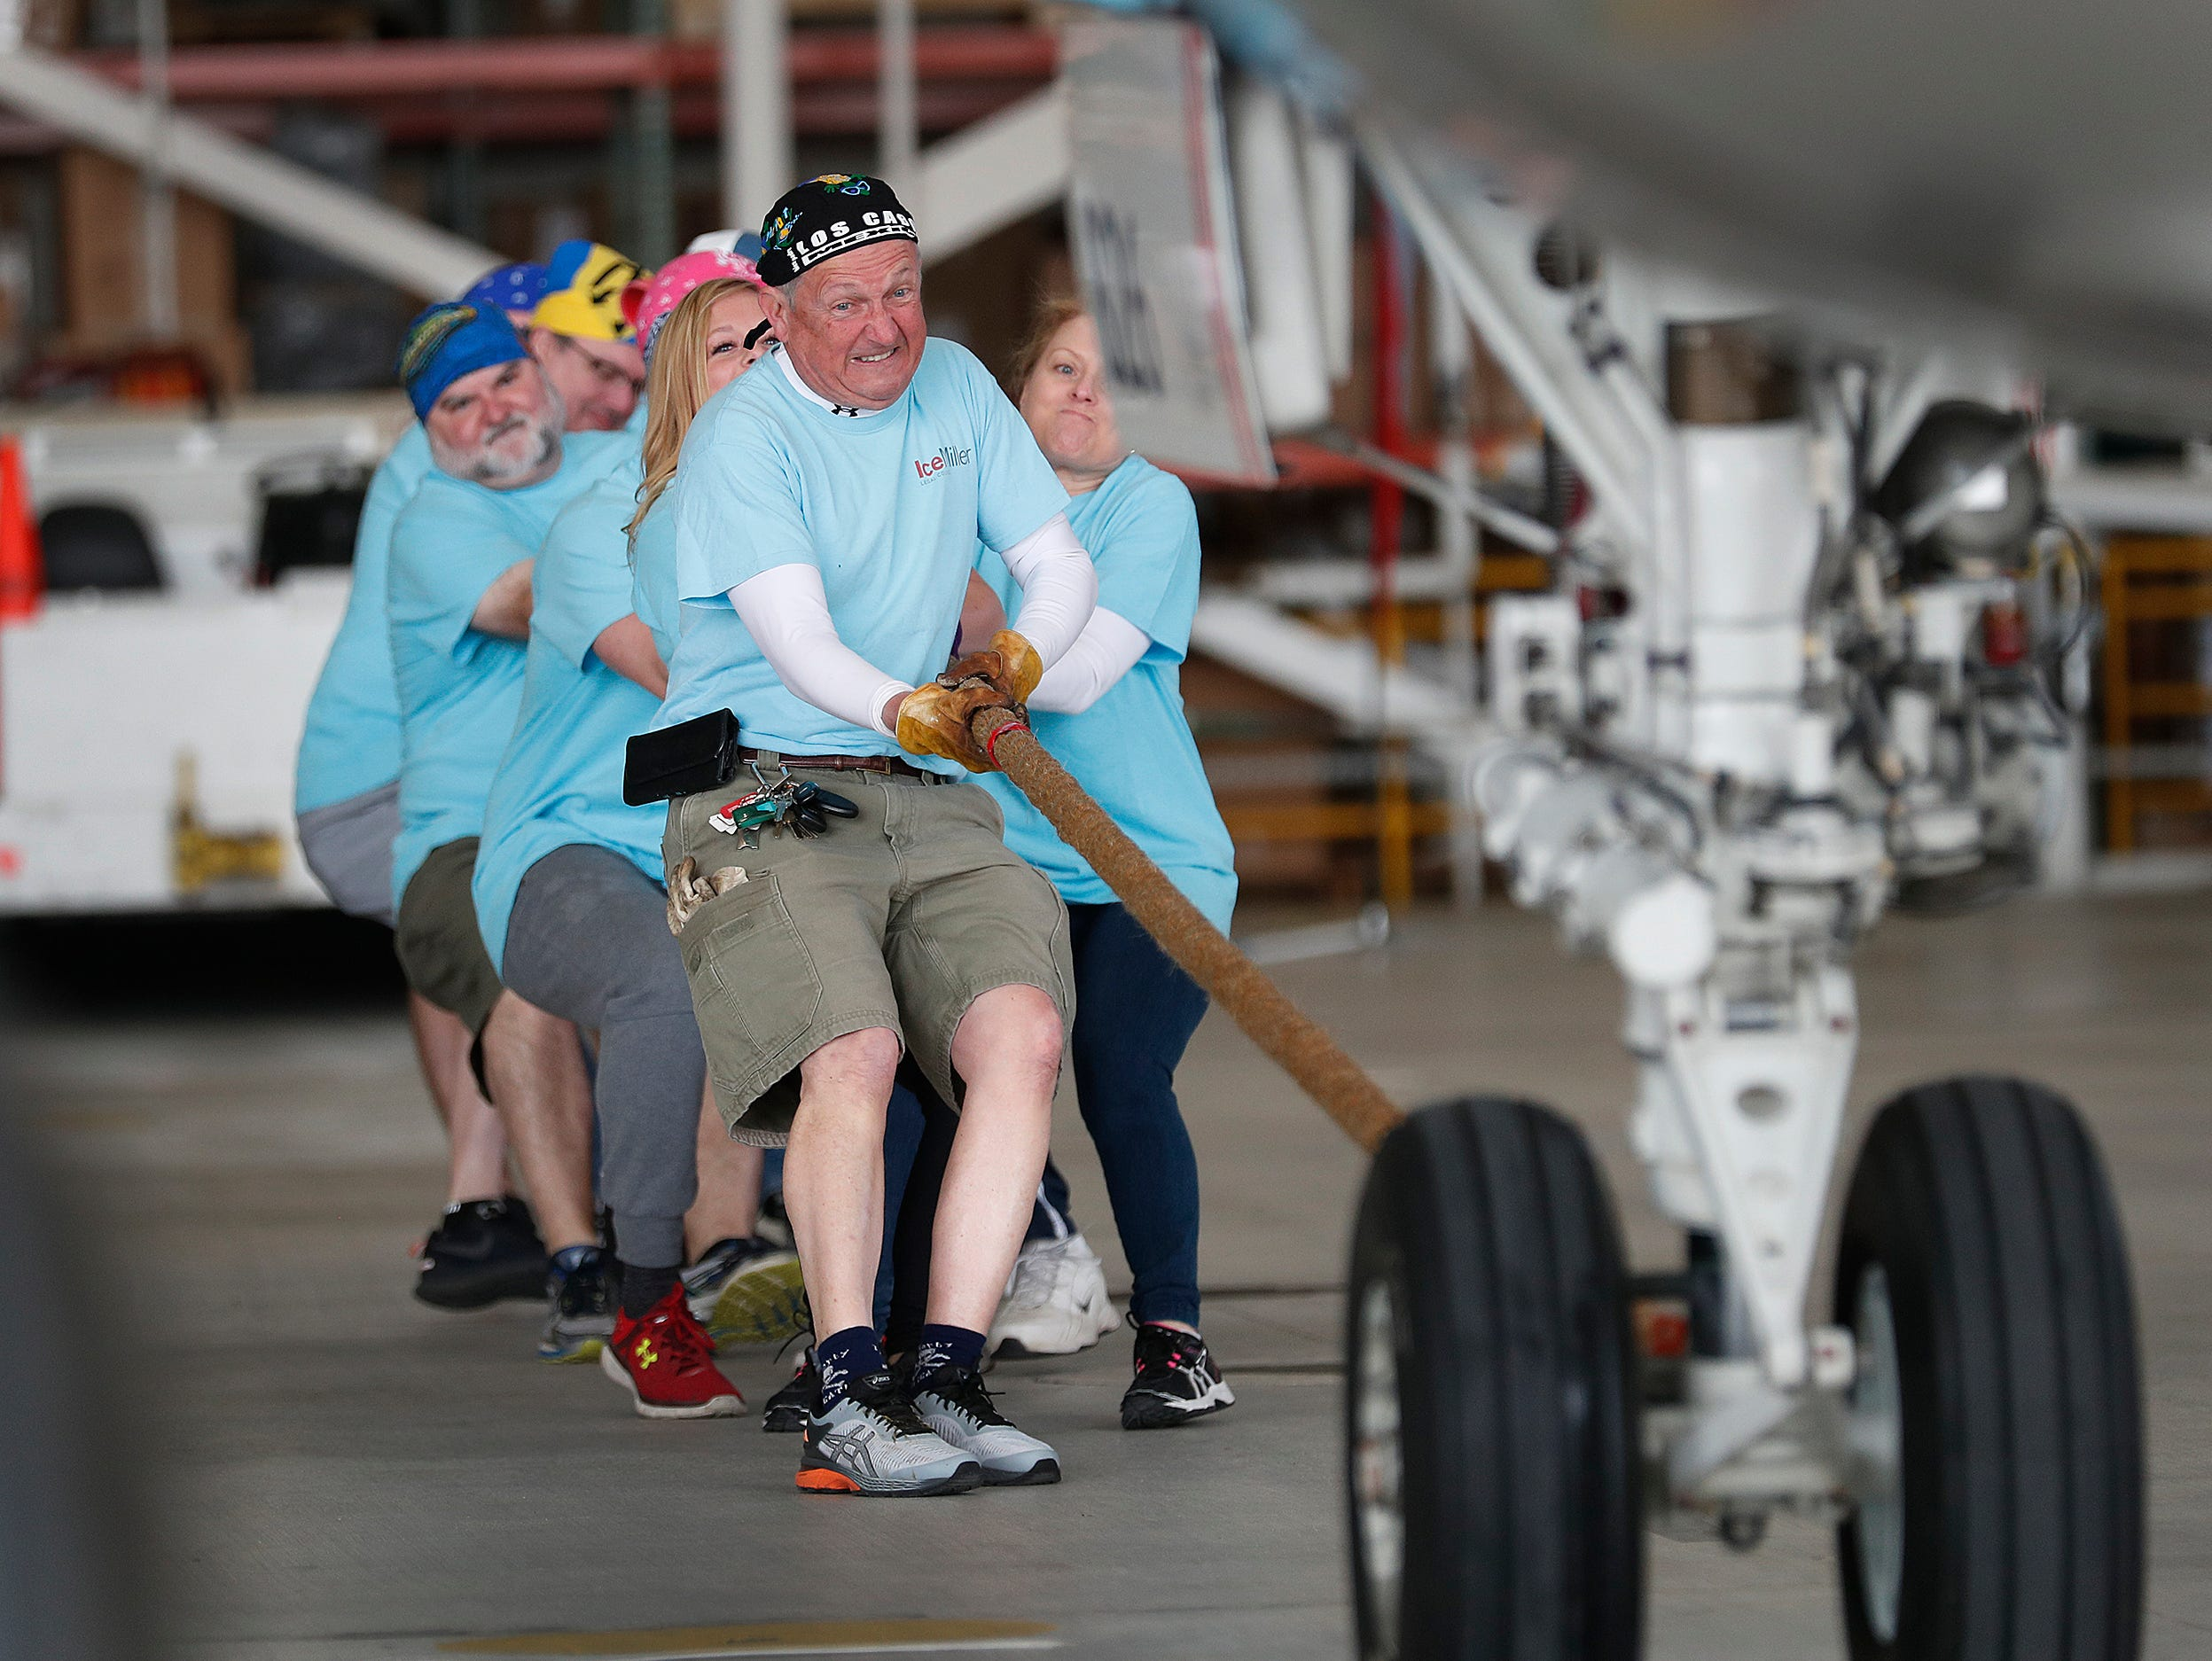 David Carr and his team from Ice Miller take their turn on the rope during the 9th Annual Republic Airways Plane Pull at the Republic Airways Hanger at the Indianapolis International Airport on Saturday, April 13, 2019. The event benefits Indiana Children's Wish Fund, Peyton Manning Children's Hospital, Riley Children's Foundation and A Kid Again. All teams will pull an Embraer 170/175 aircraft 15 feet.